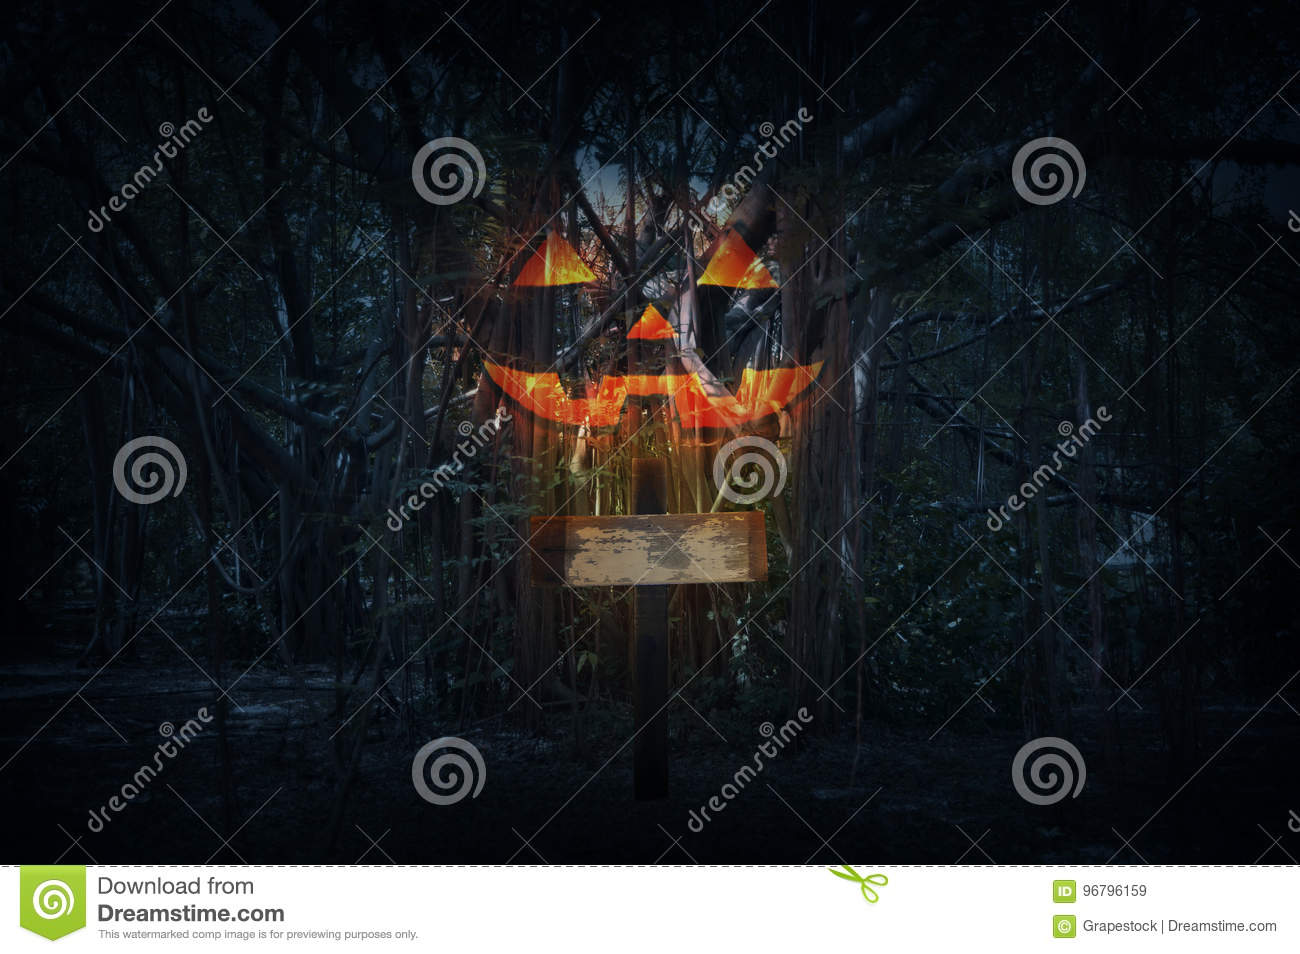 Cross with Jack O Lantern pumpkin over spooky forest at night ti